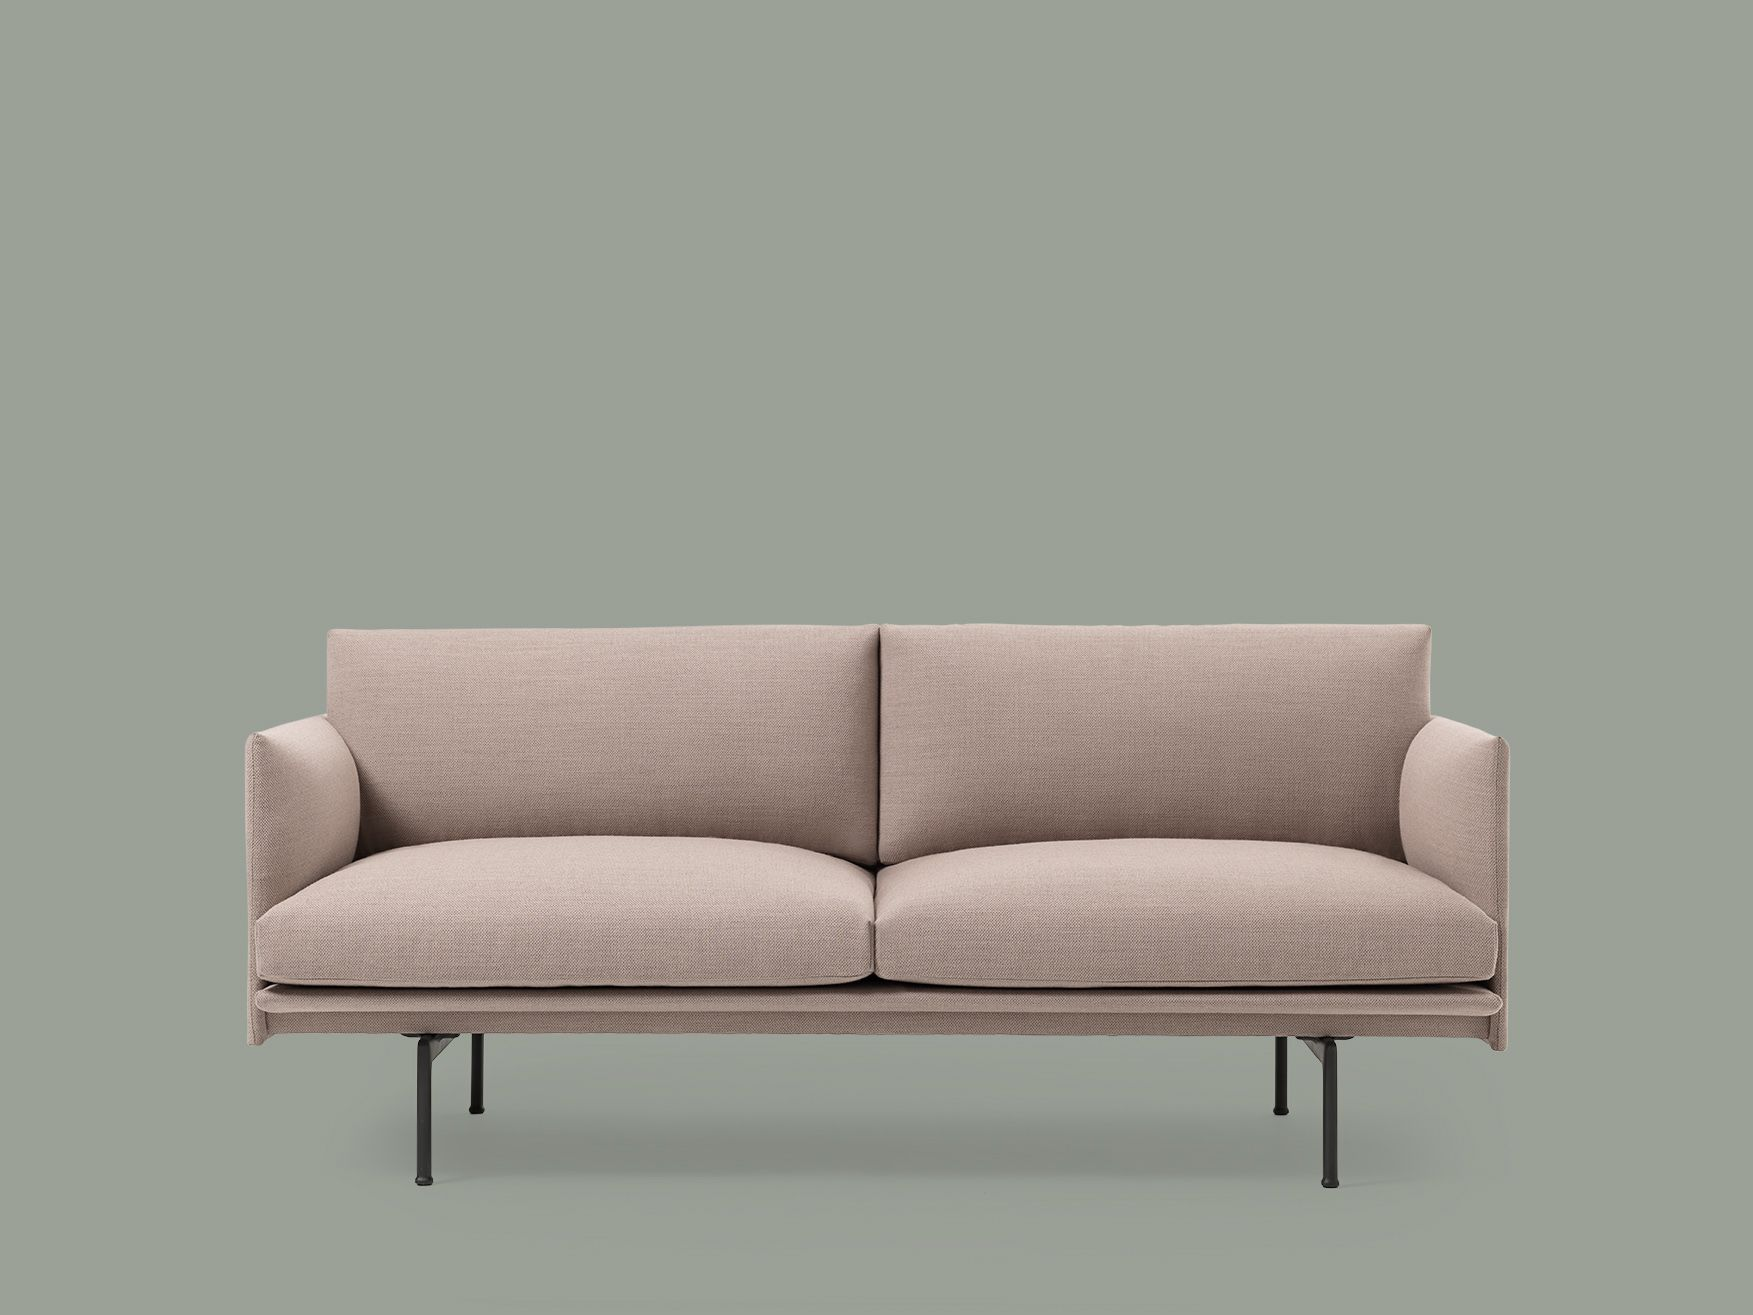 The Outline Series Adds New Perspectives To The Classic Scandinavian Design Sofas Of The In 2020 Scandinavian Sofa Design Milan Furniture Scandinavian Furniture Design